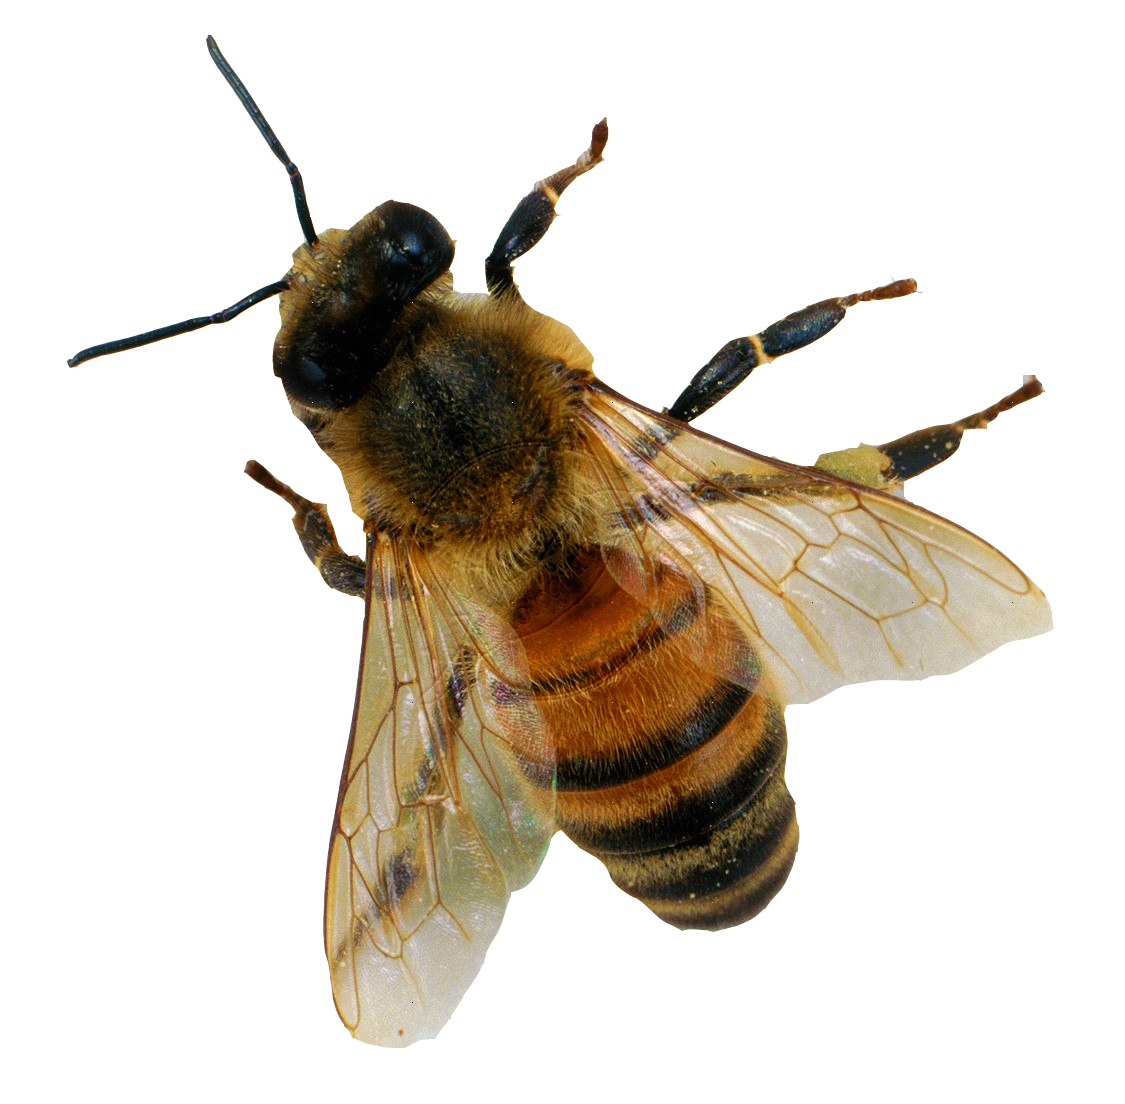 Download Bee Png 6 Hq Png Image Freepngimg